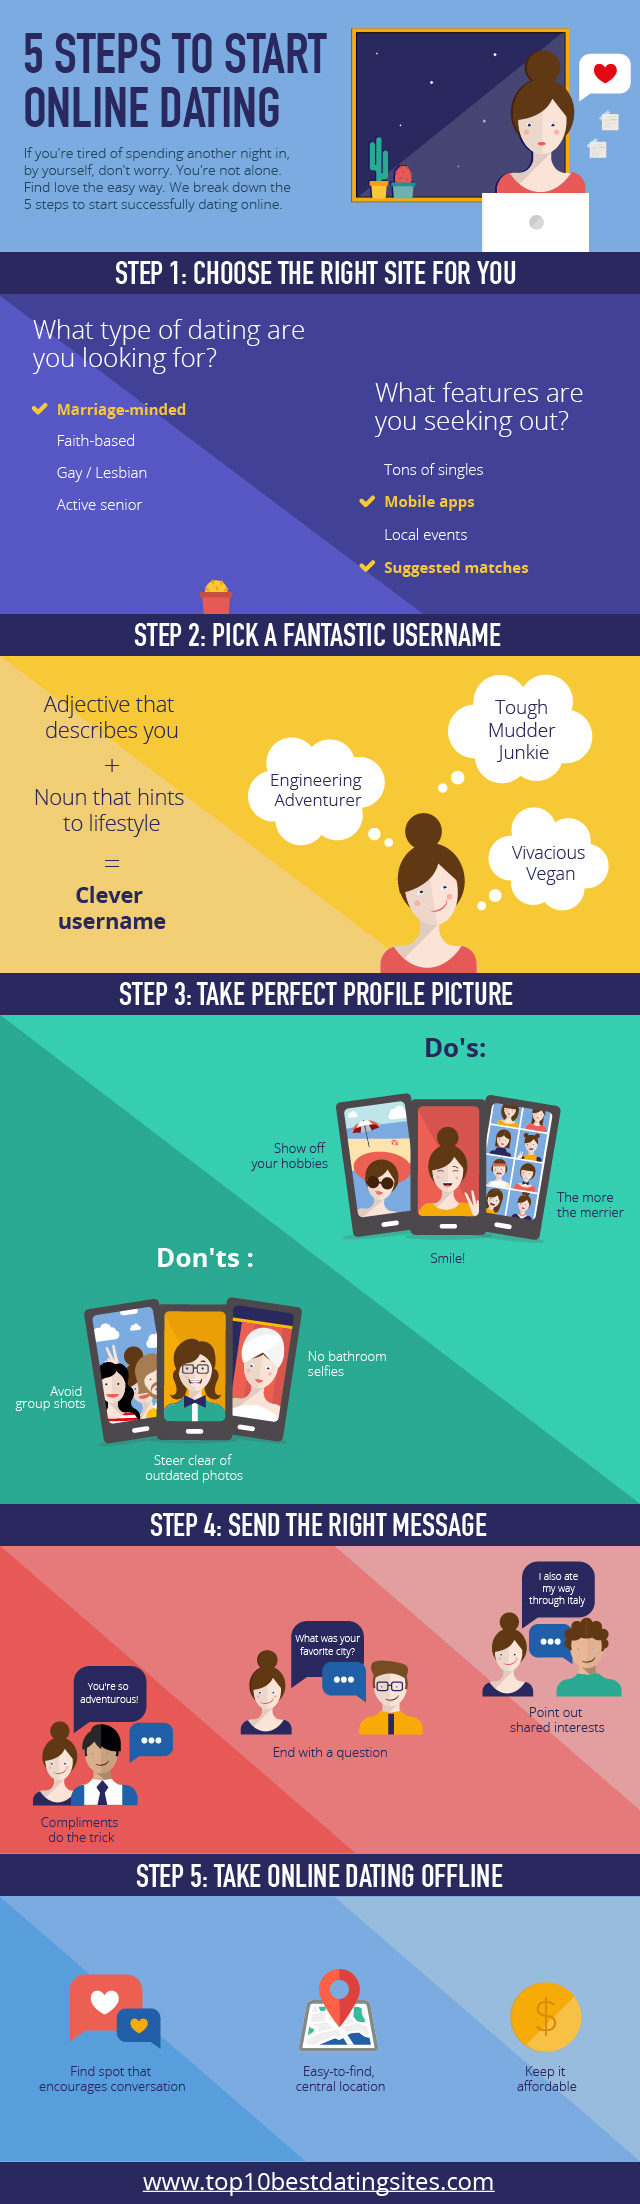 5 steps to start online dating - infographic